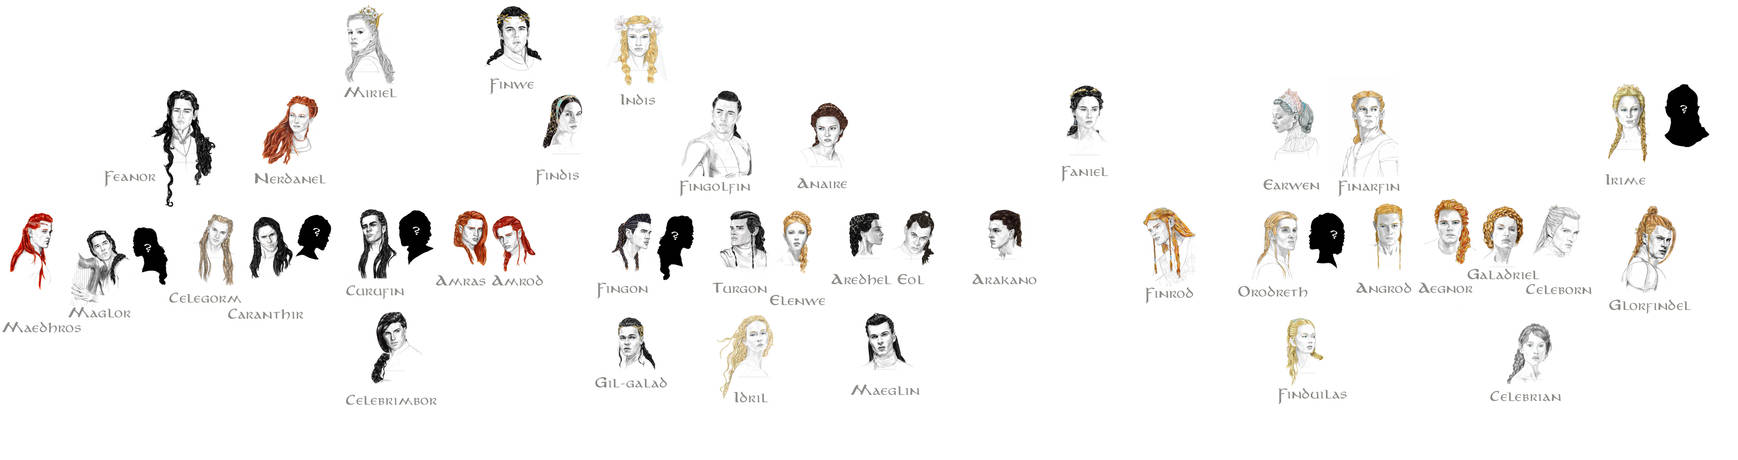 genealogy of the noldor from Finwe to great-grandc